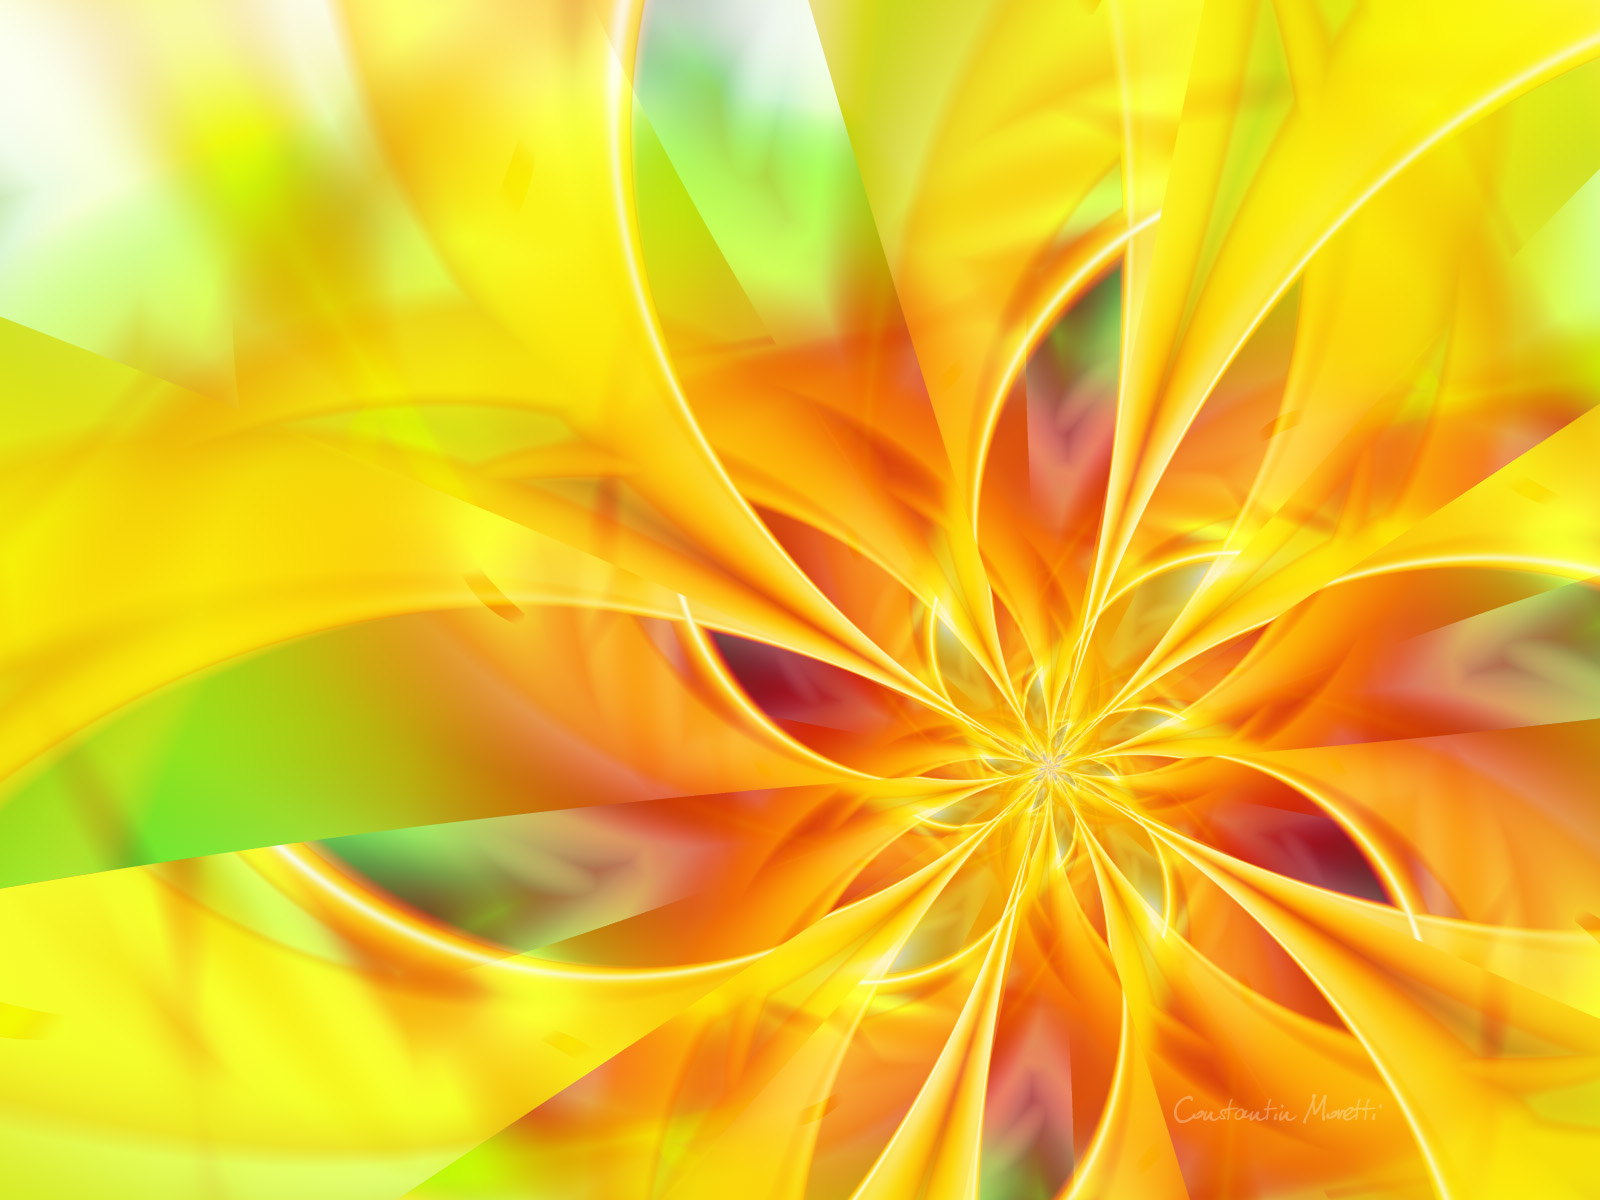 http://3.bp.blogspot.com/-ZHWAc4yg46g/UPKdwyd4GiI/AAAAAAAAAII/umleA3HVf14/s1600/Yellow+Wallpaper+Abstract+2.jpg